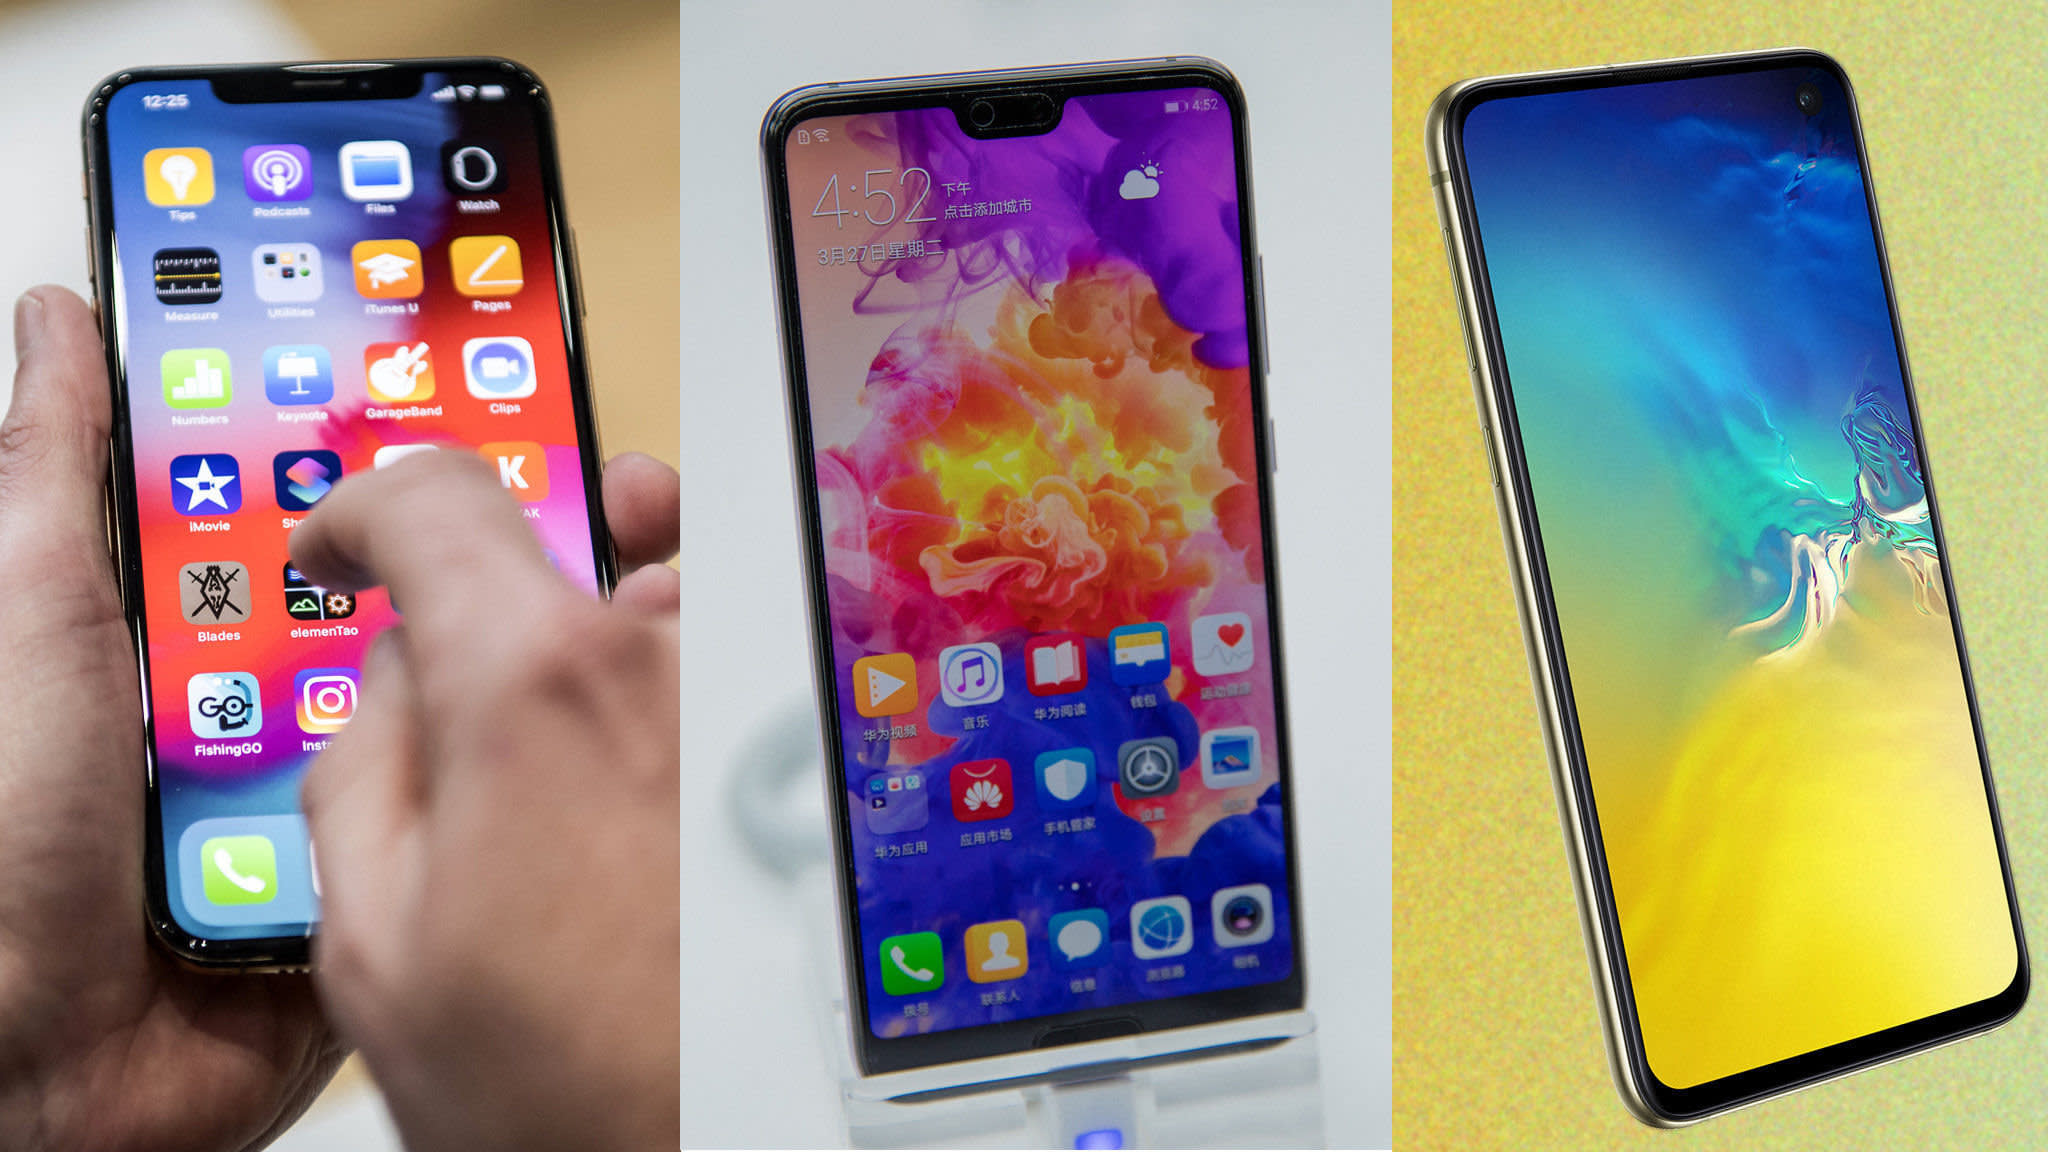 Samsung takes on rivals Apple and Huawei with Galaxy S10 launch | Financial Times